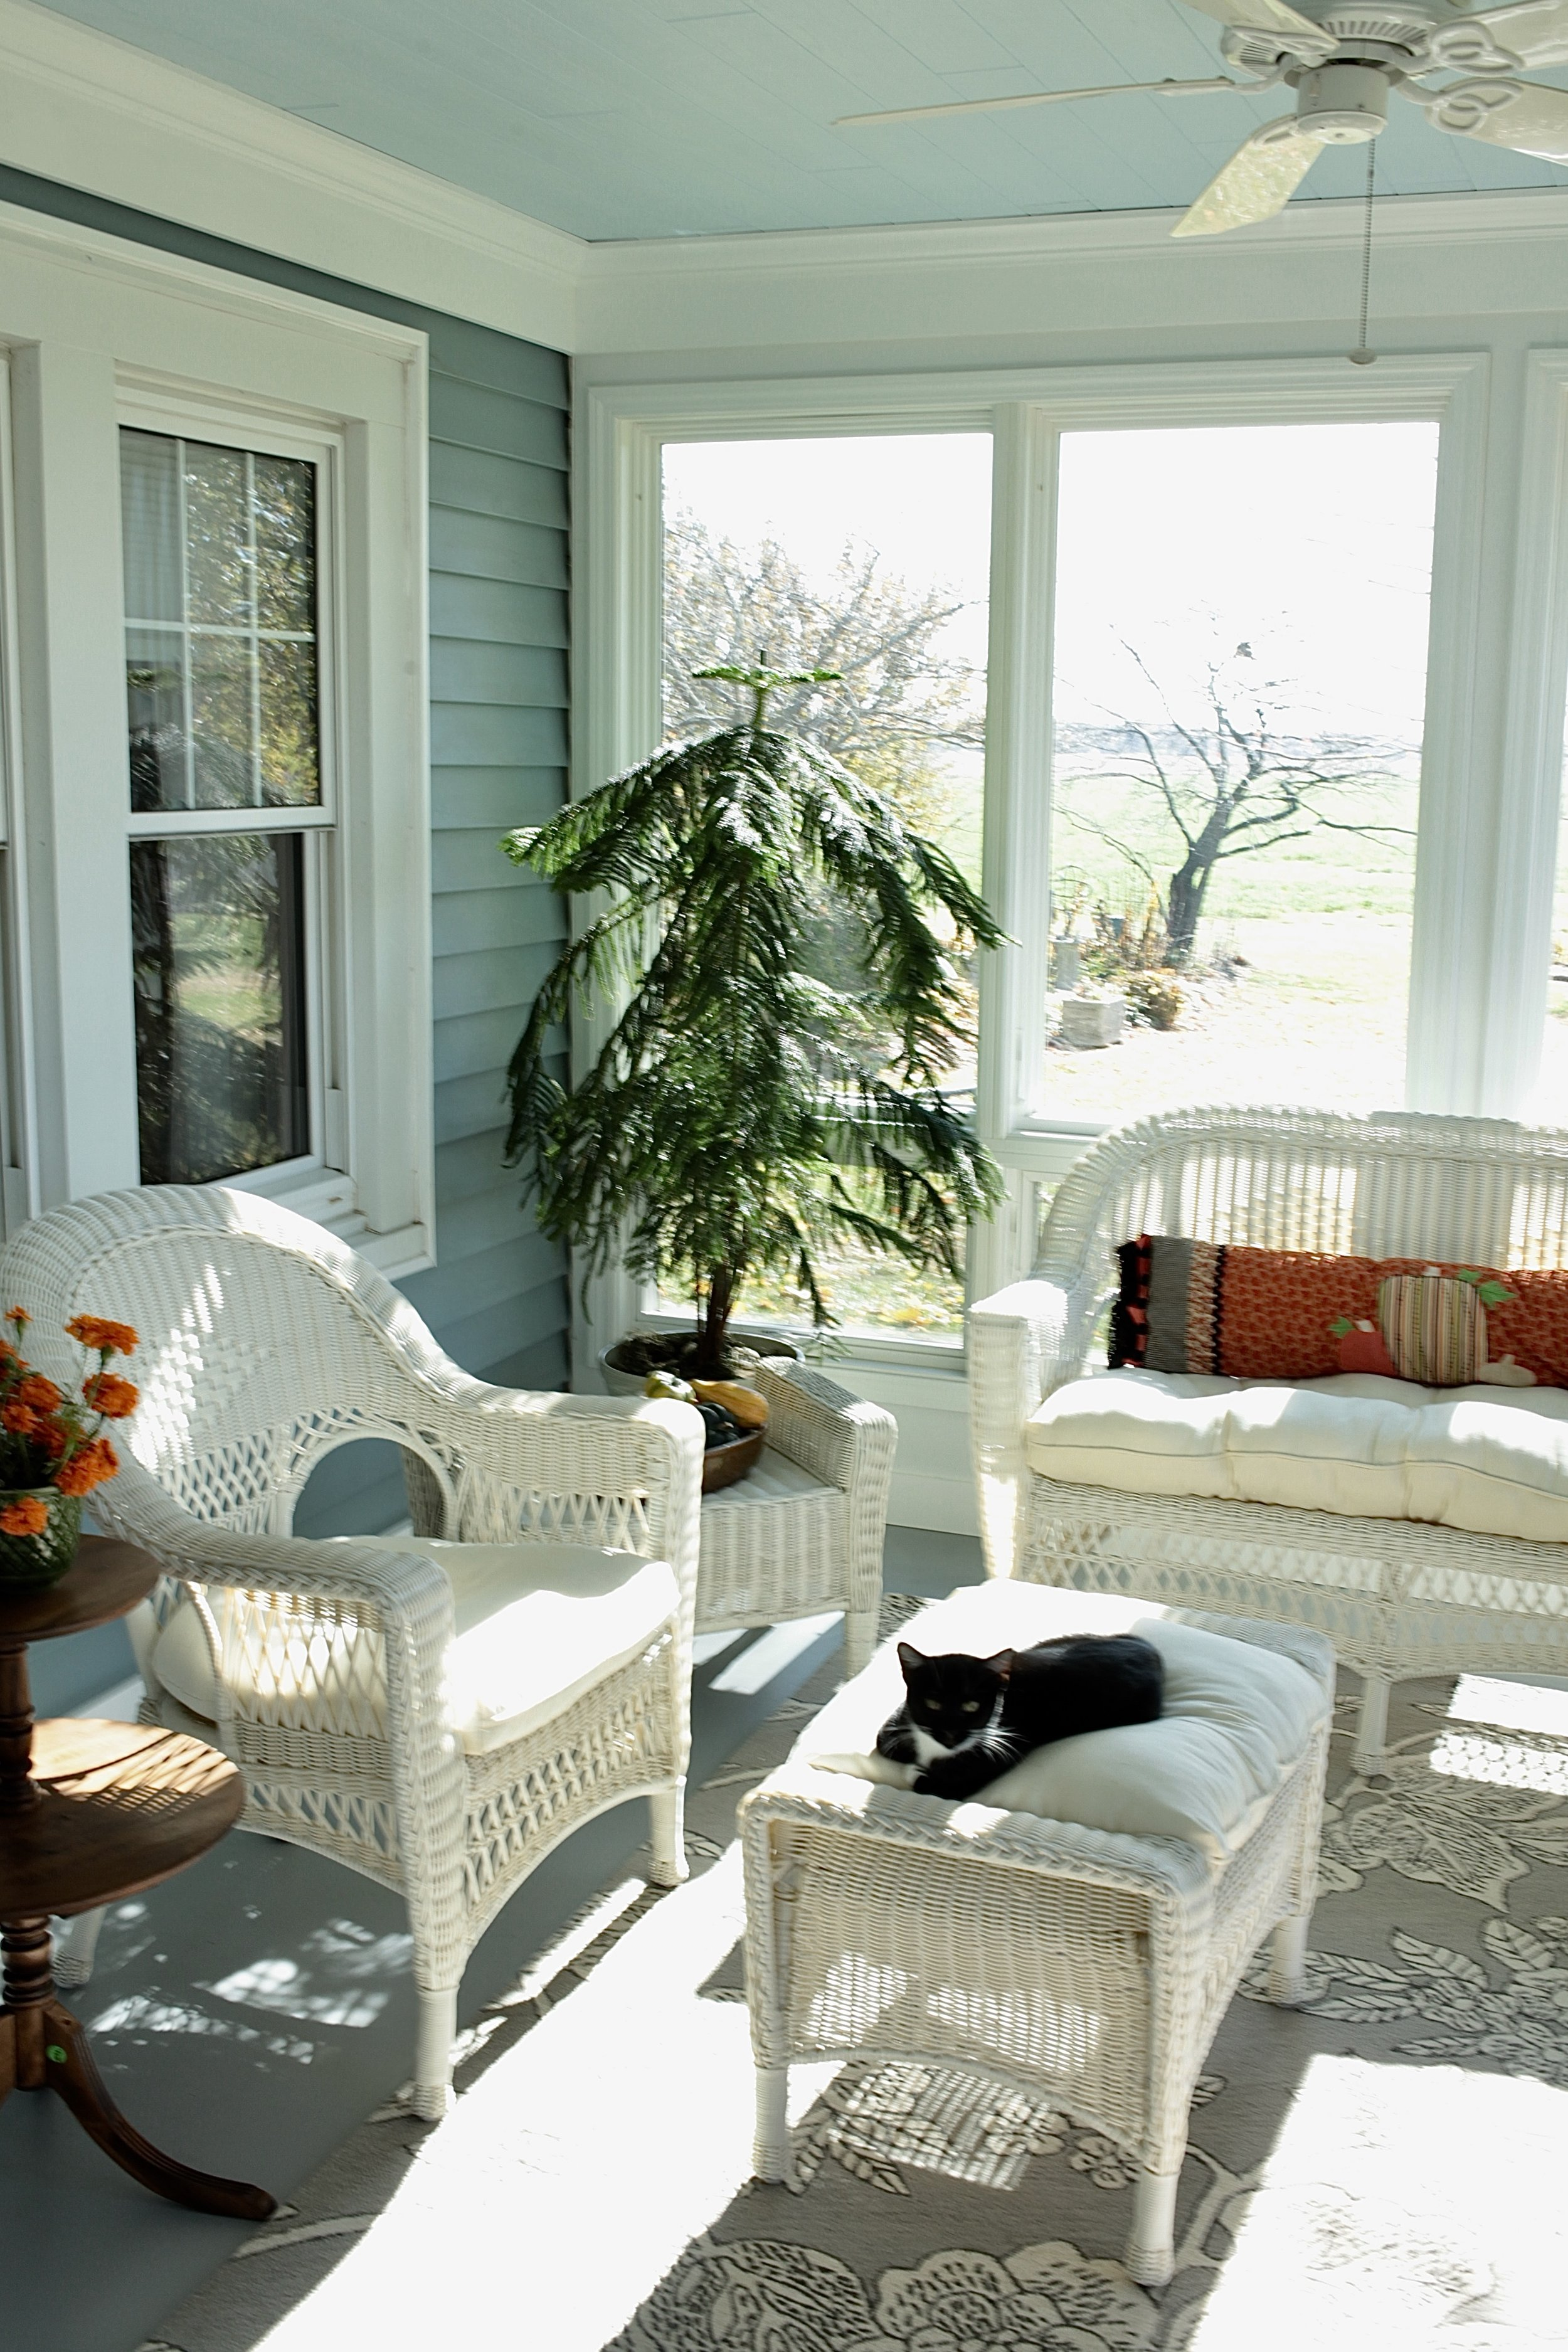 Bright sun room makeover with blue ceiling, wicker chairs, and plants